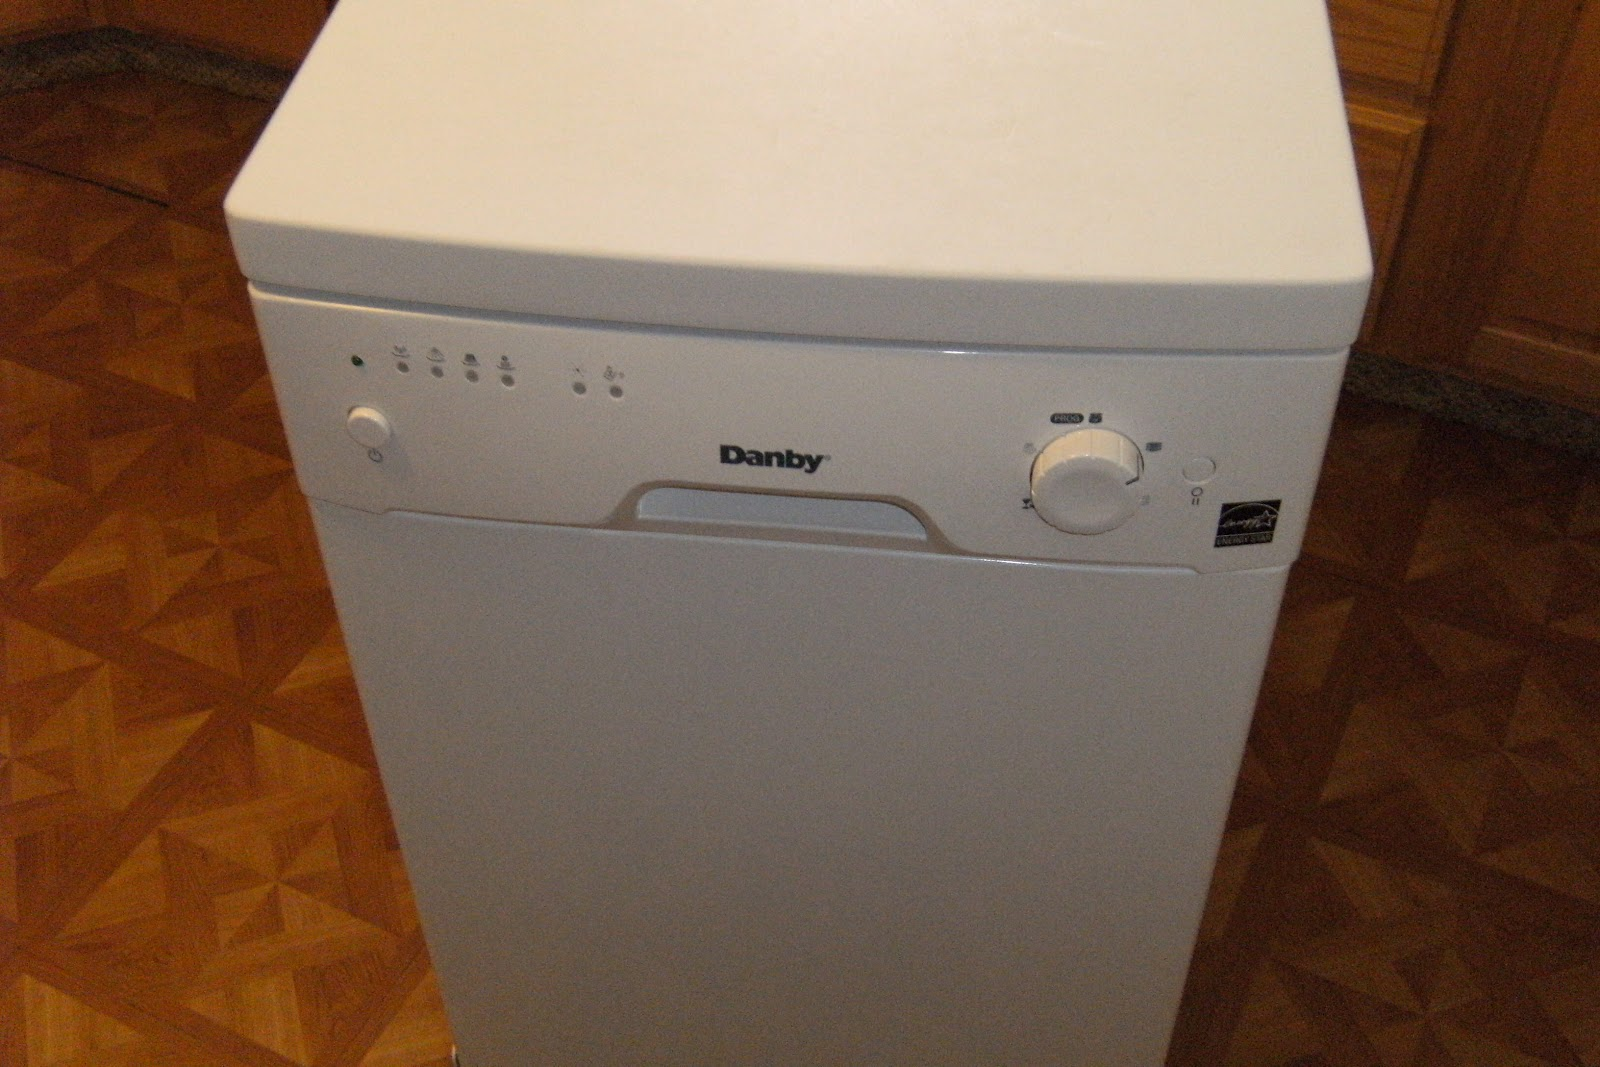 Does it really work?: Danby Portable Dishwasher DDW1899WP